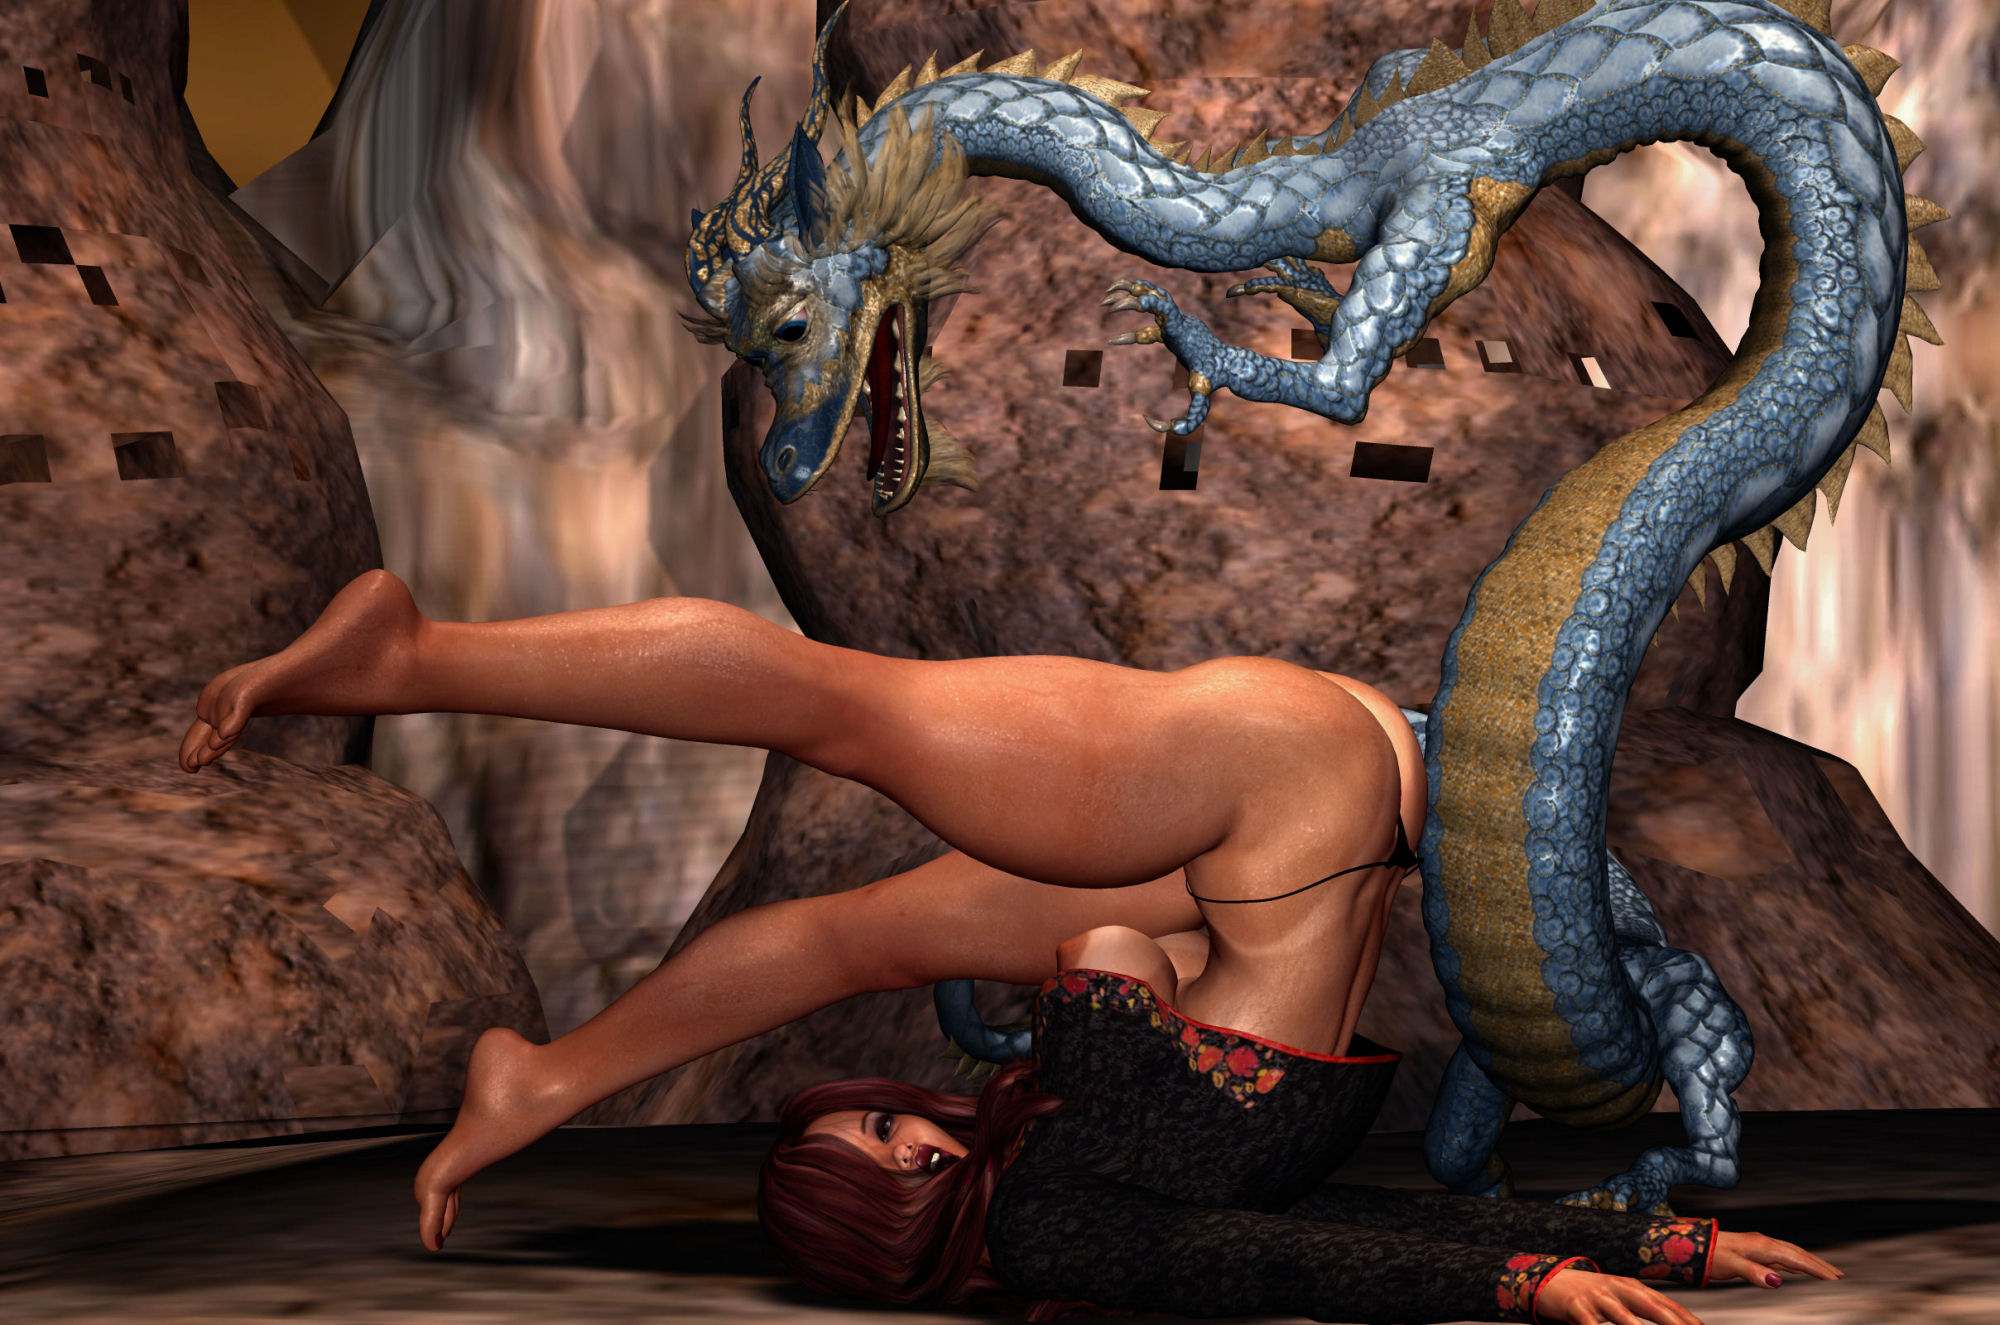 3d monster dragons hentai video erotic photo